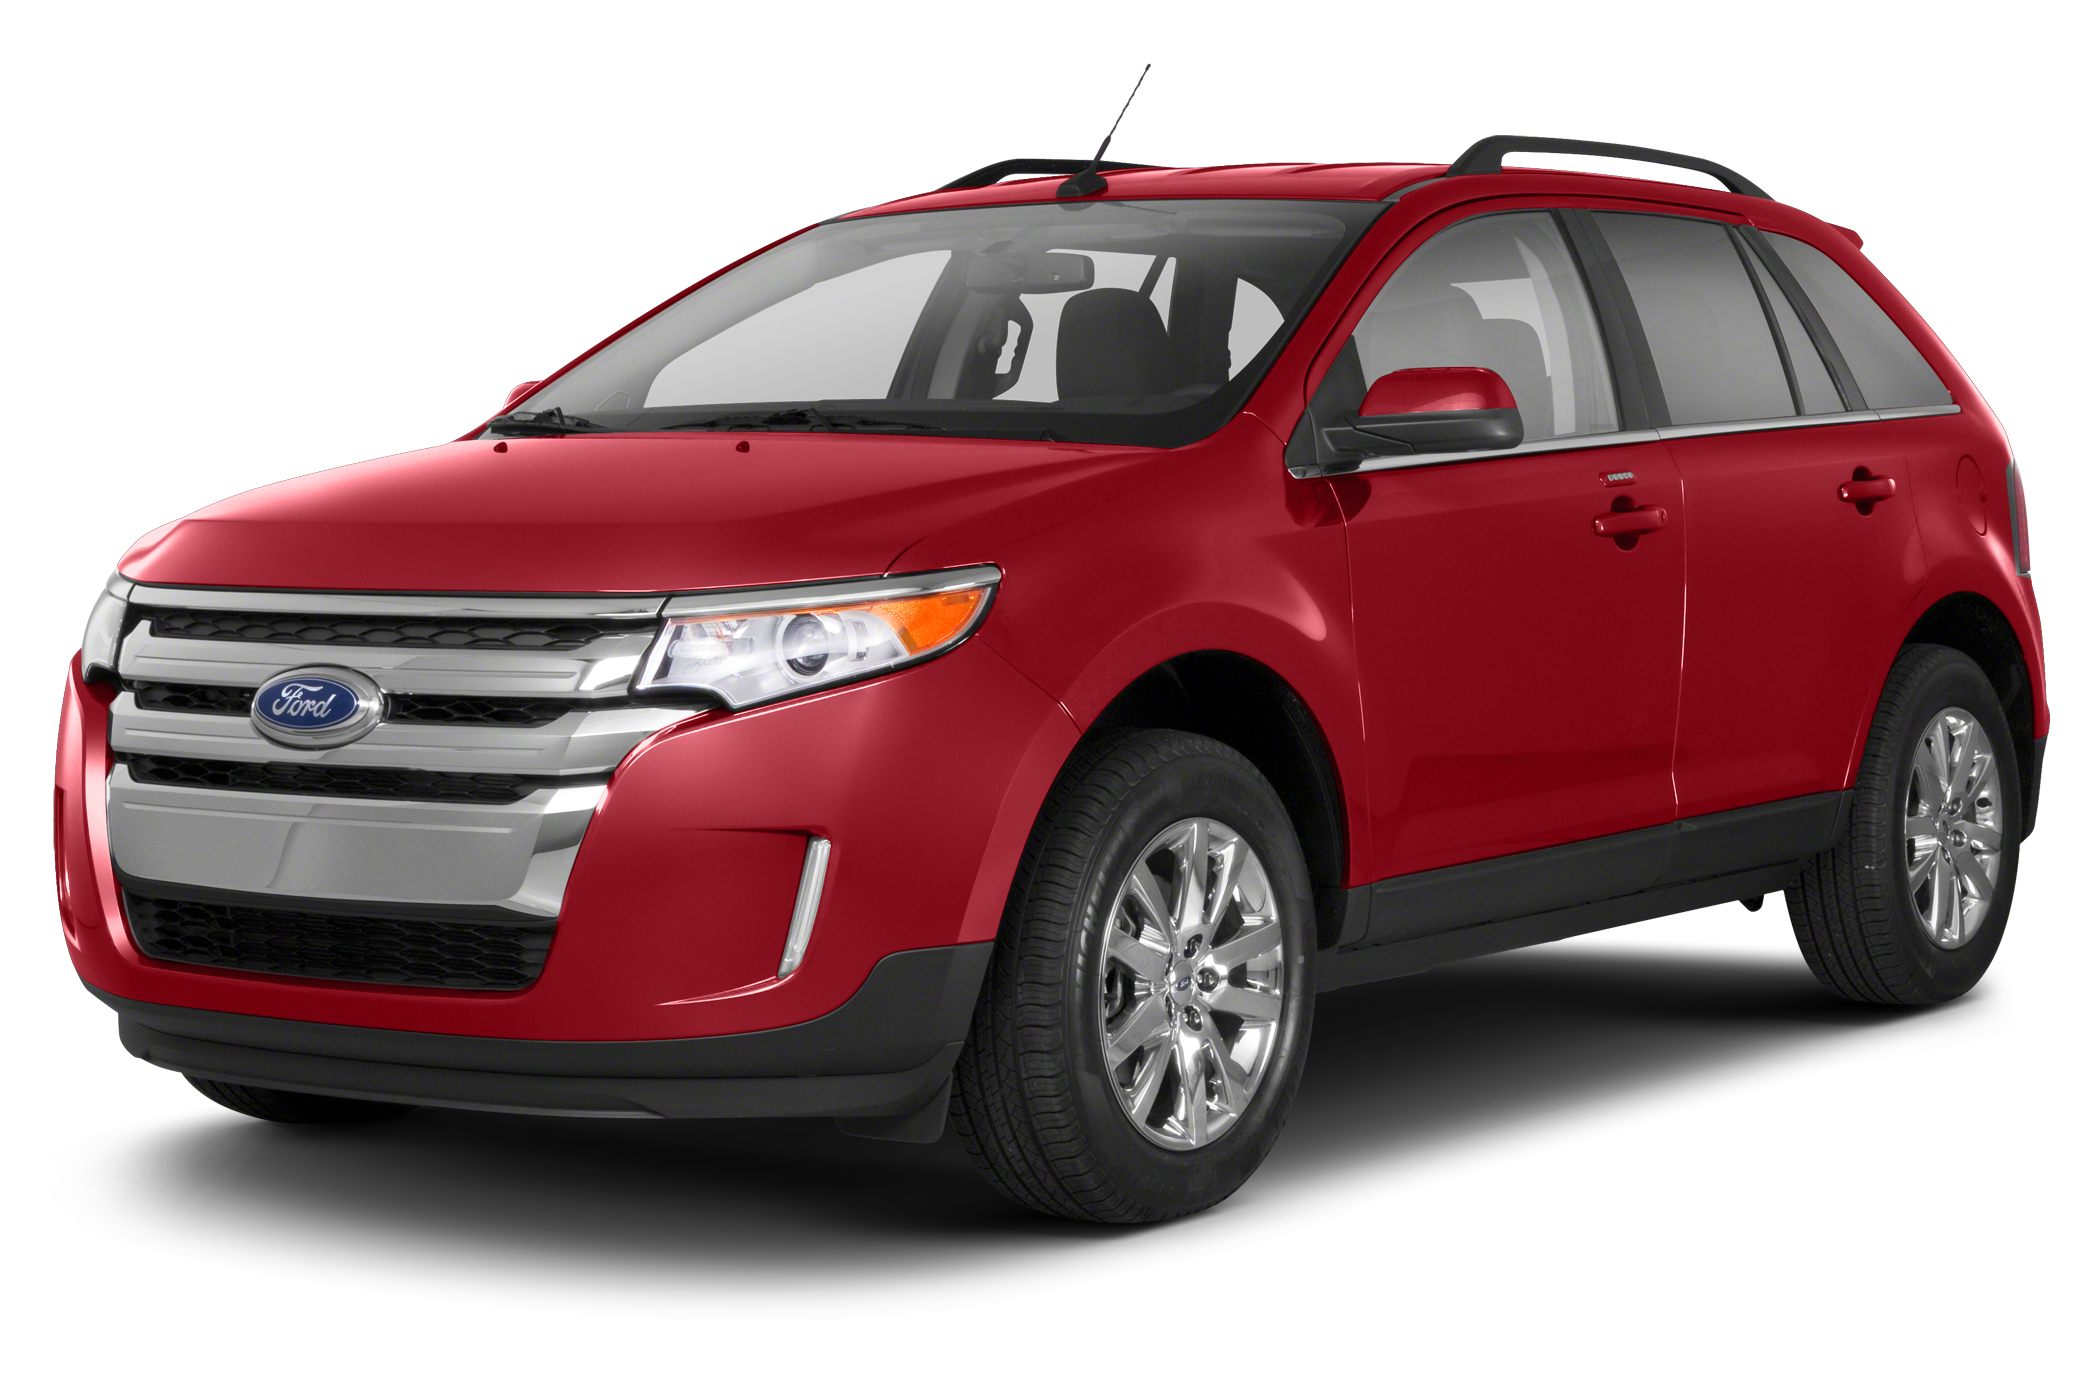 2013 ford edge airbag recall autos post. Black Bedroom Furniture Sets. Home Design Ideas